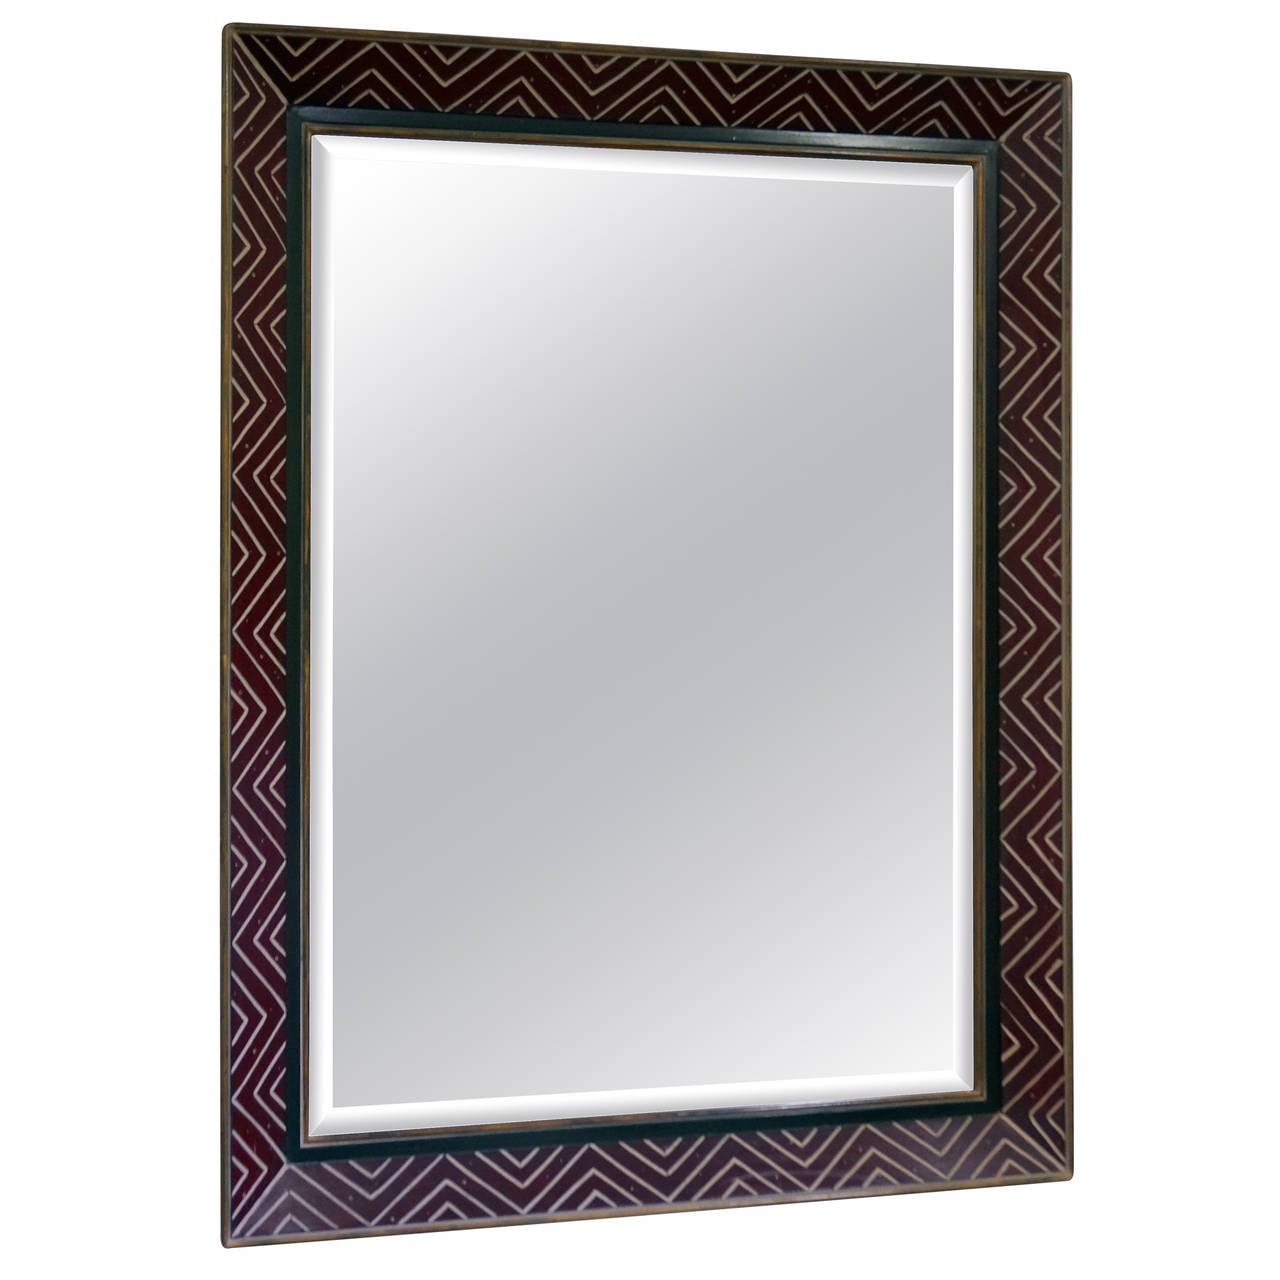 Art Deco Egyptian Revival Style Wall Mirror With Incised